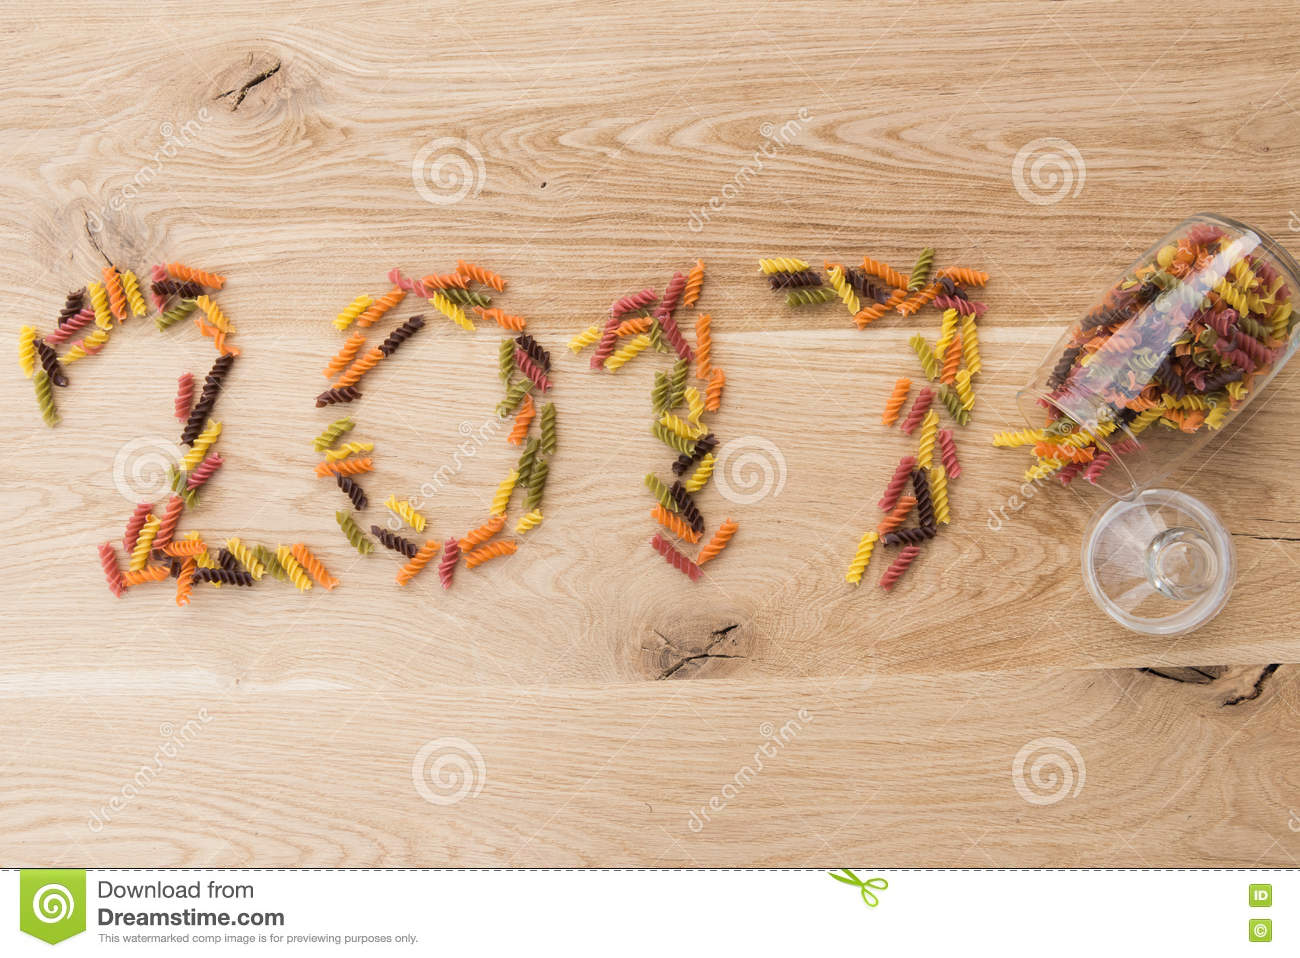 2017 New Year Speech On The Board Stock Image   Image of number     Download 2017 New Year Speech On The Board Stock Image   Image of number   board